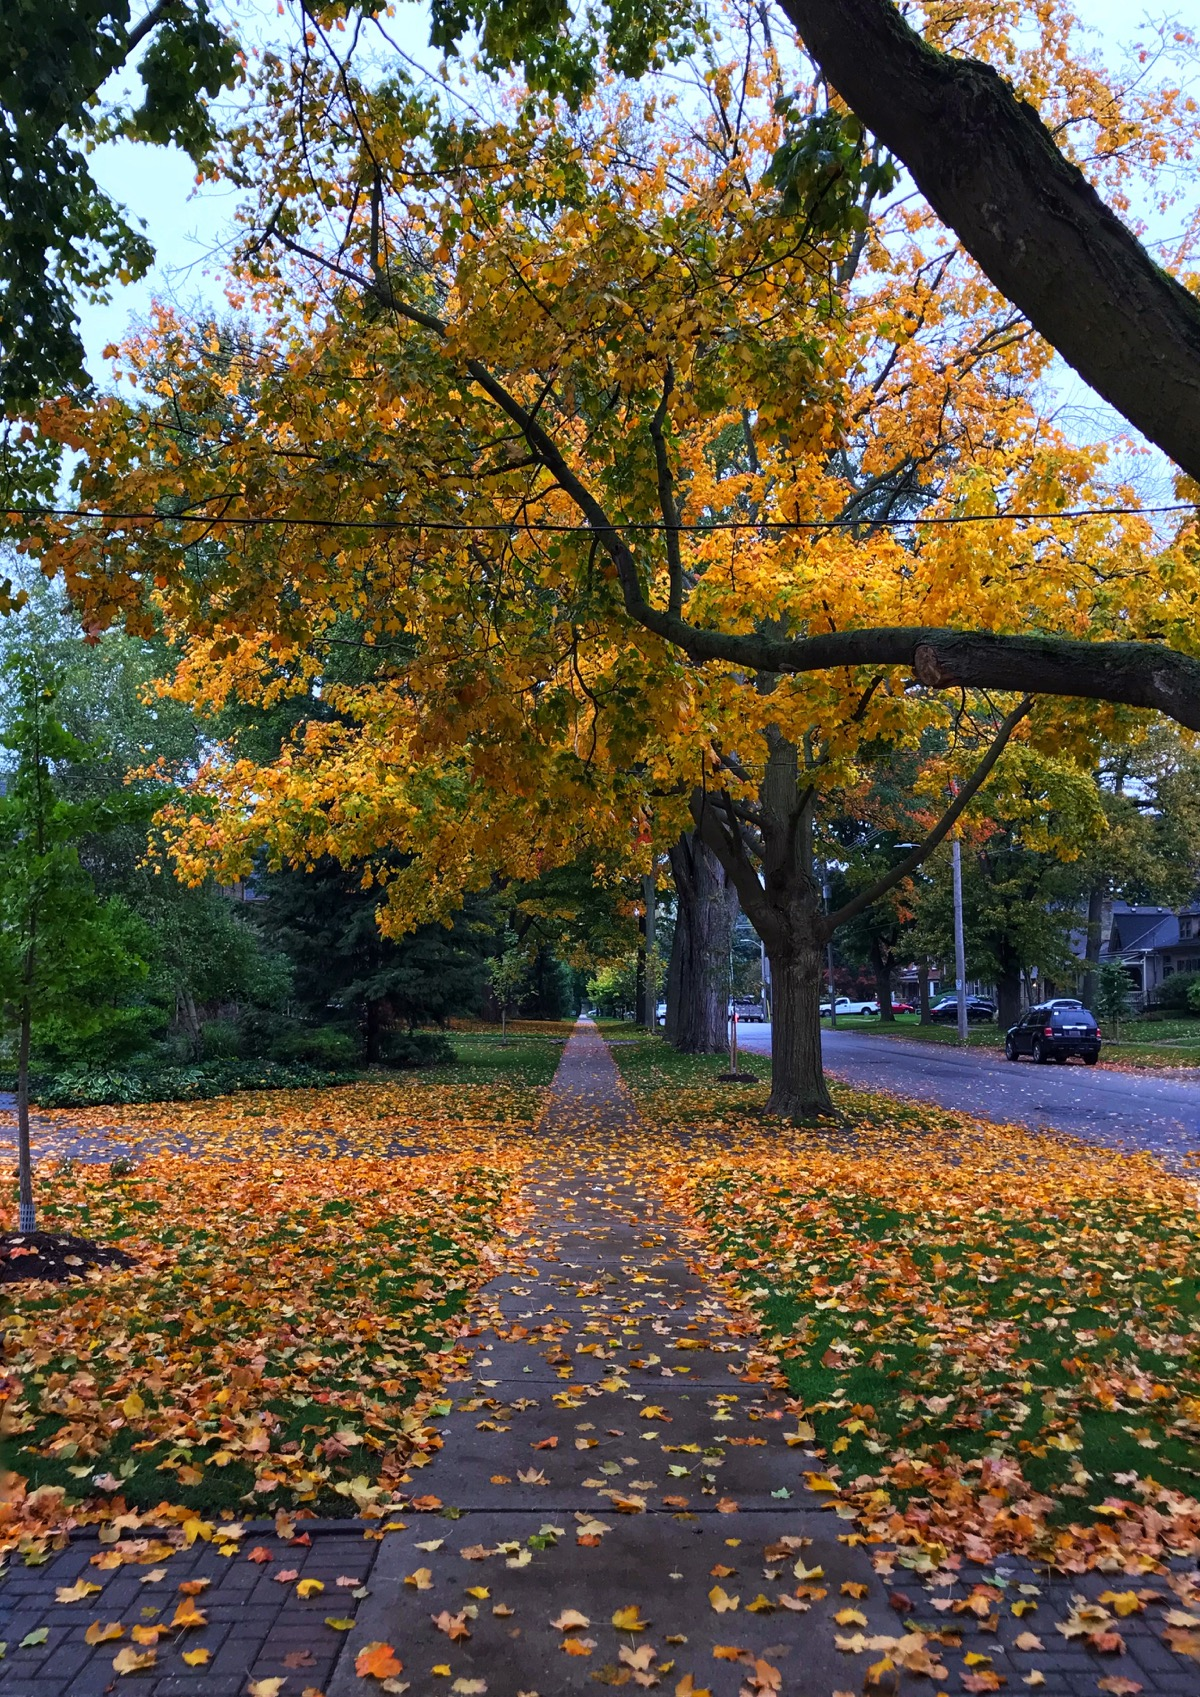 City sidewalk covered in yellow leaves